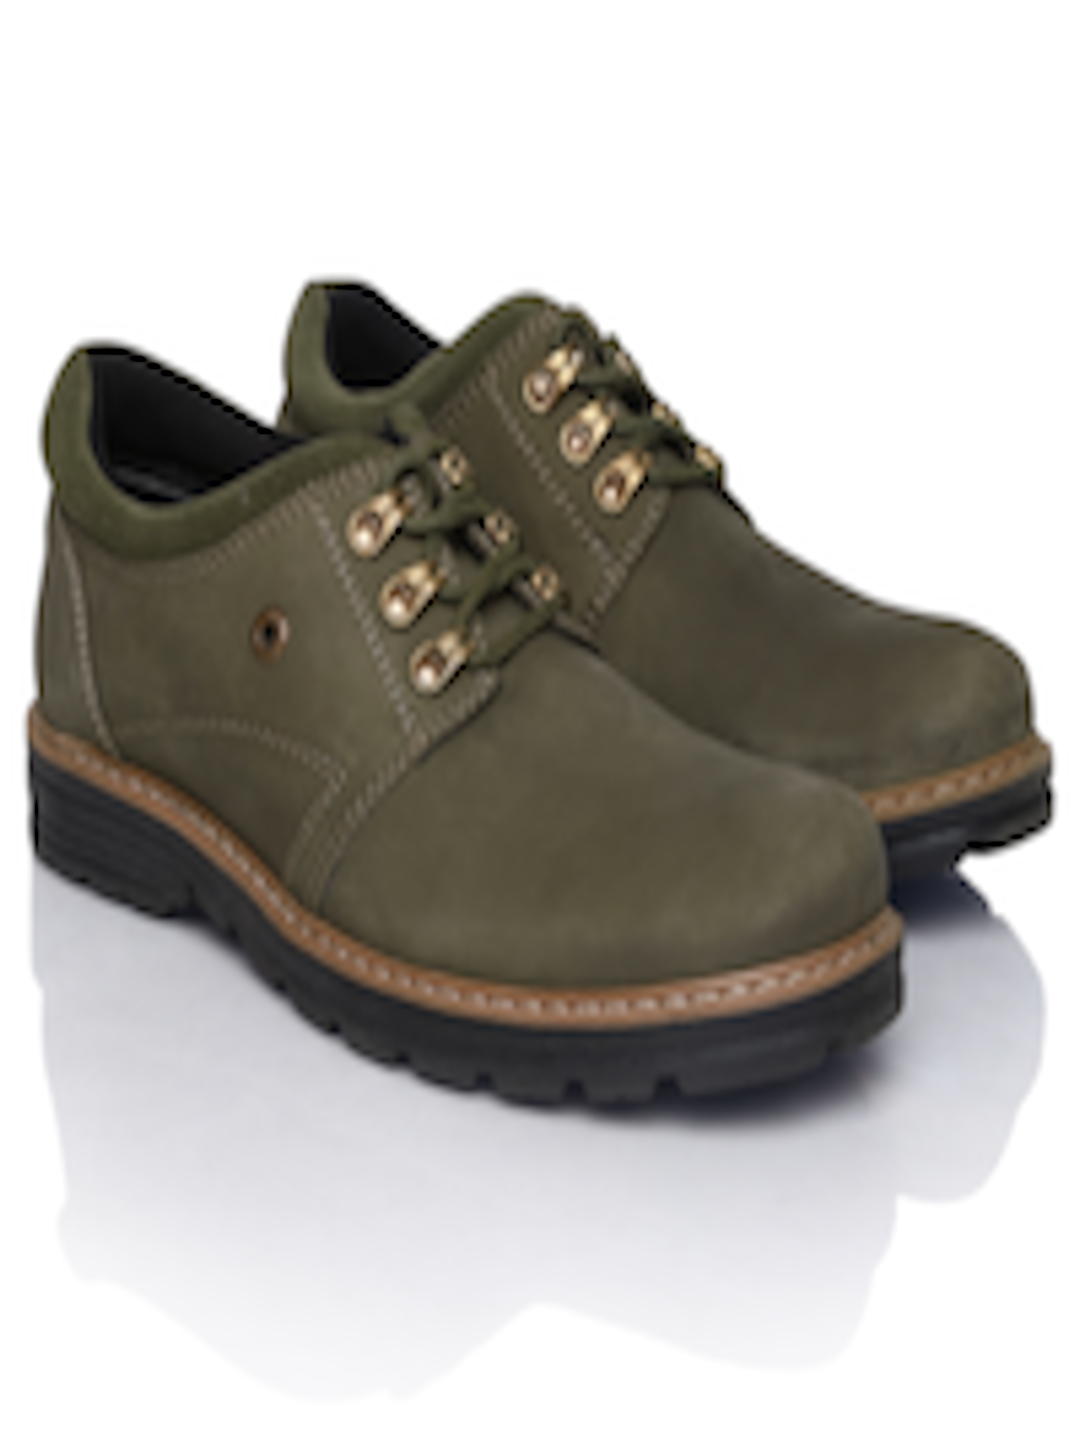 33959c4738 Buy Weinbrenner By Bata Men Olive Green Leather Casual Shoes - Casual Shoes  for Men 575699